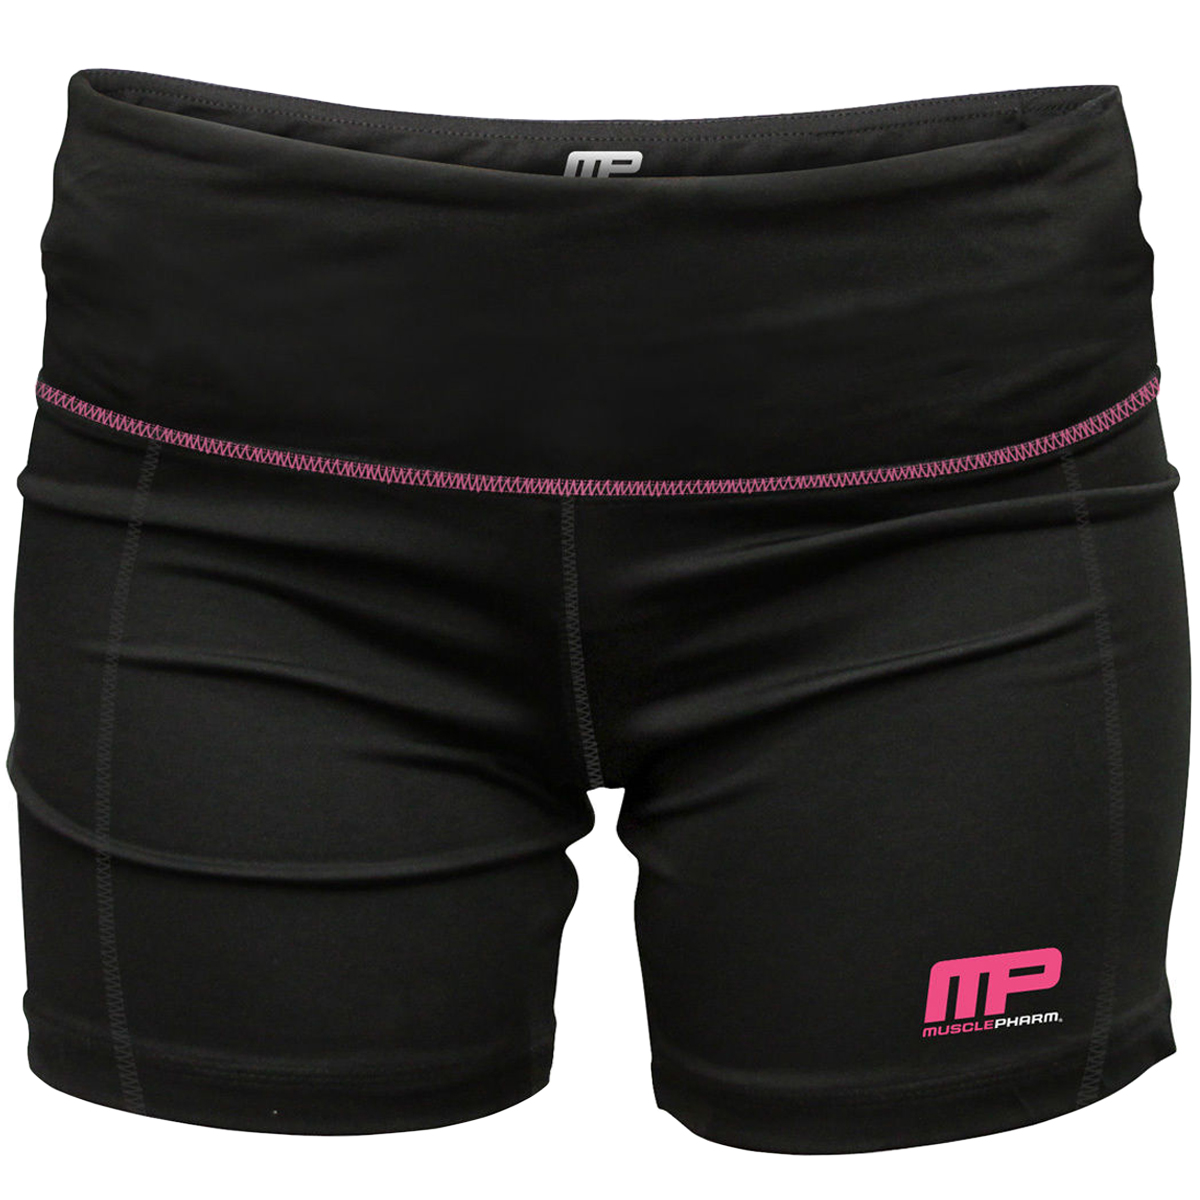 MusclePharm Women's Virus Compression Pro Shorts - Small - Black/Pink